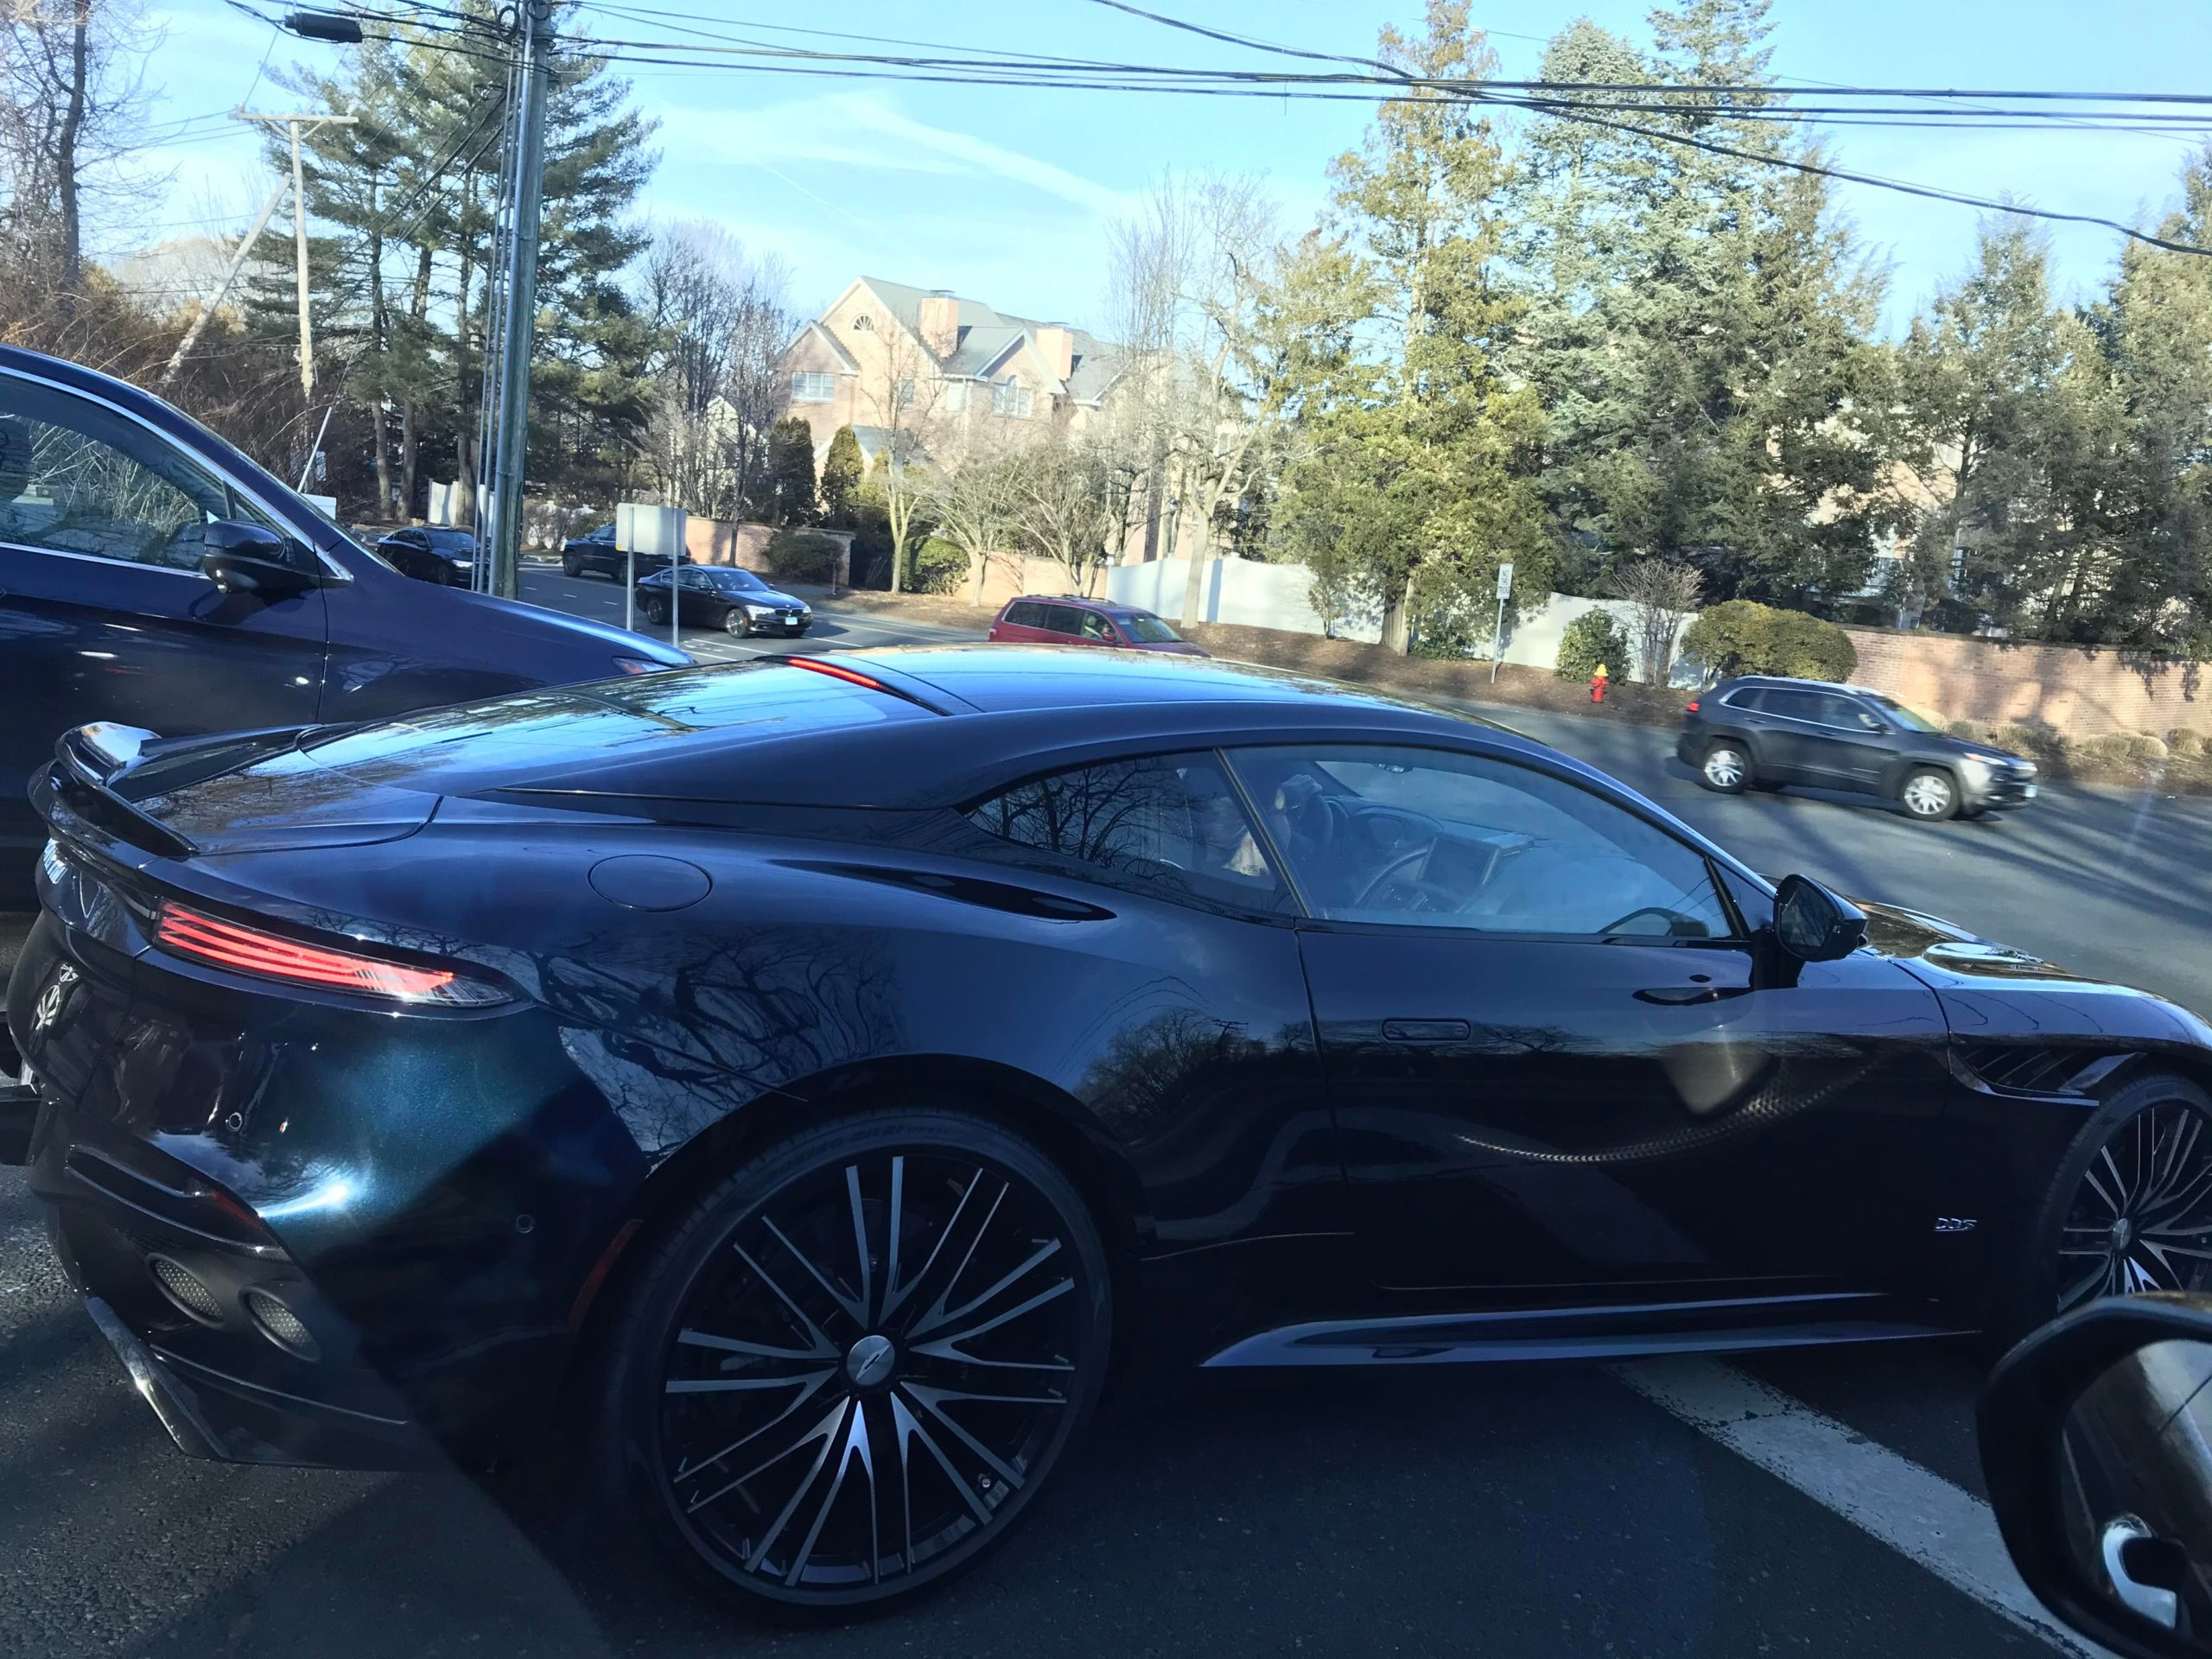 Best shot I could get through tinted windows without looking like a creeper! Sick Aston Martin, anyone know the model?